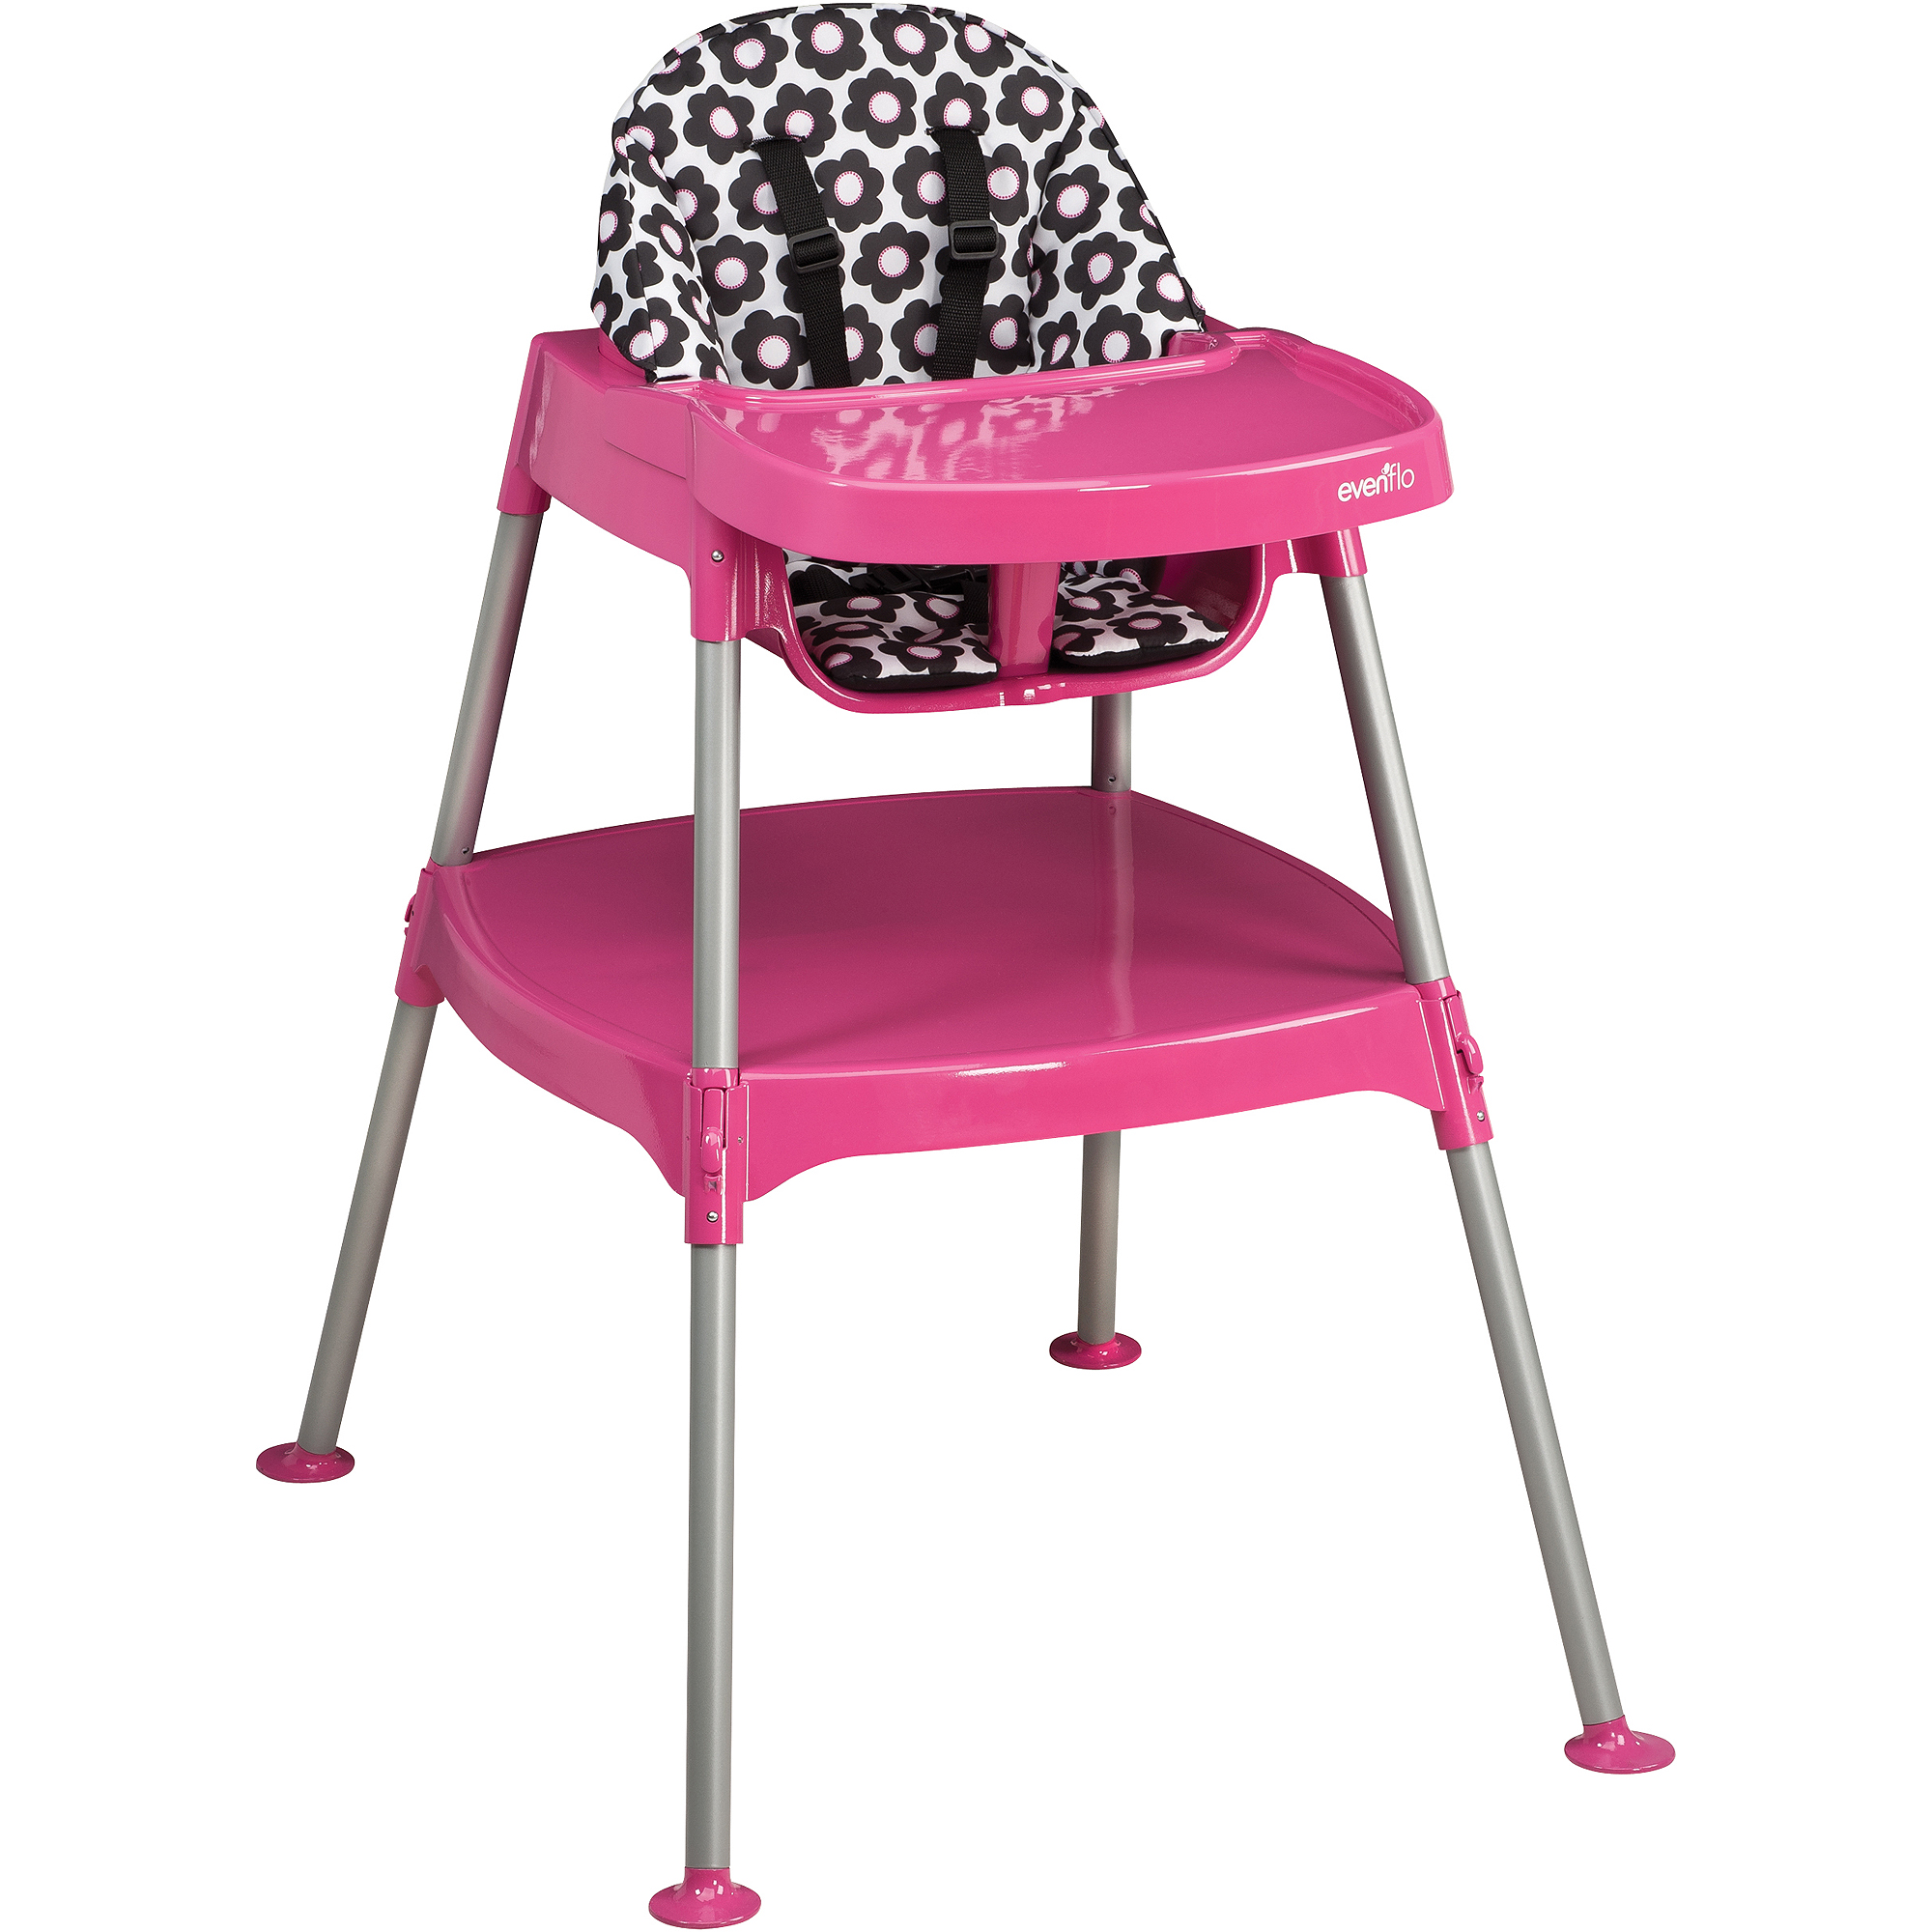 Evenflo Marianna Convertible 3 in 1 High Chair Walmart